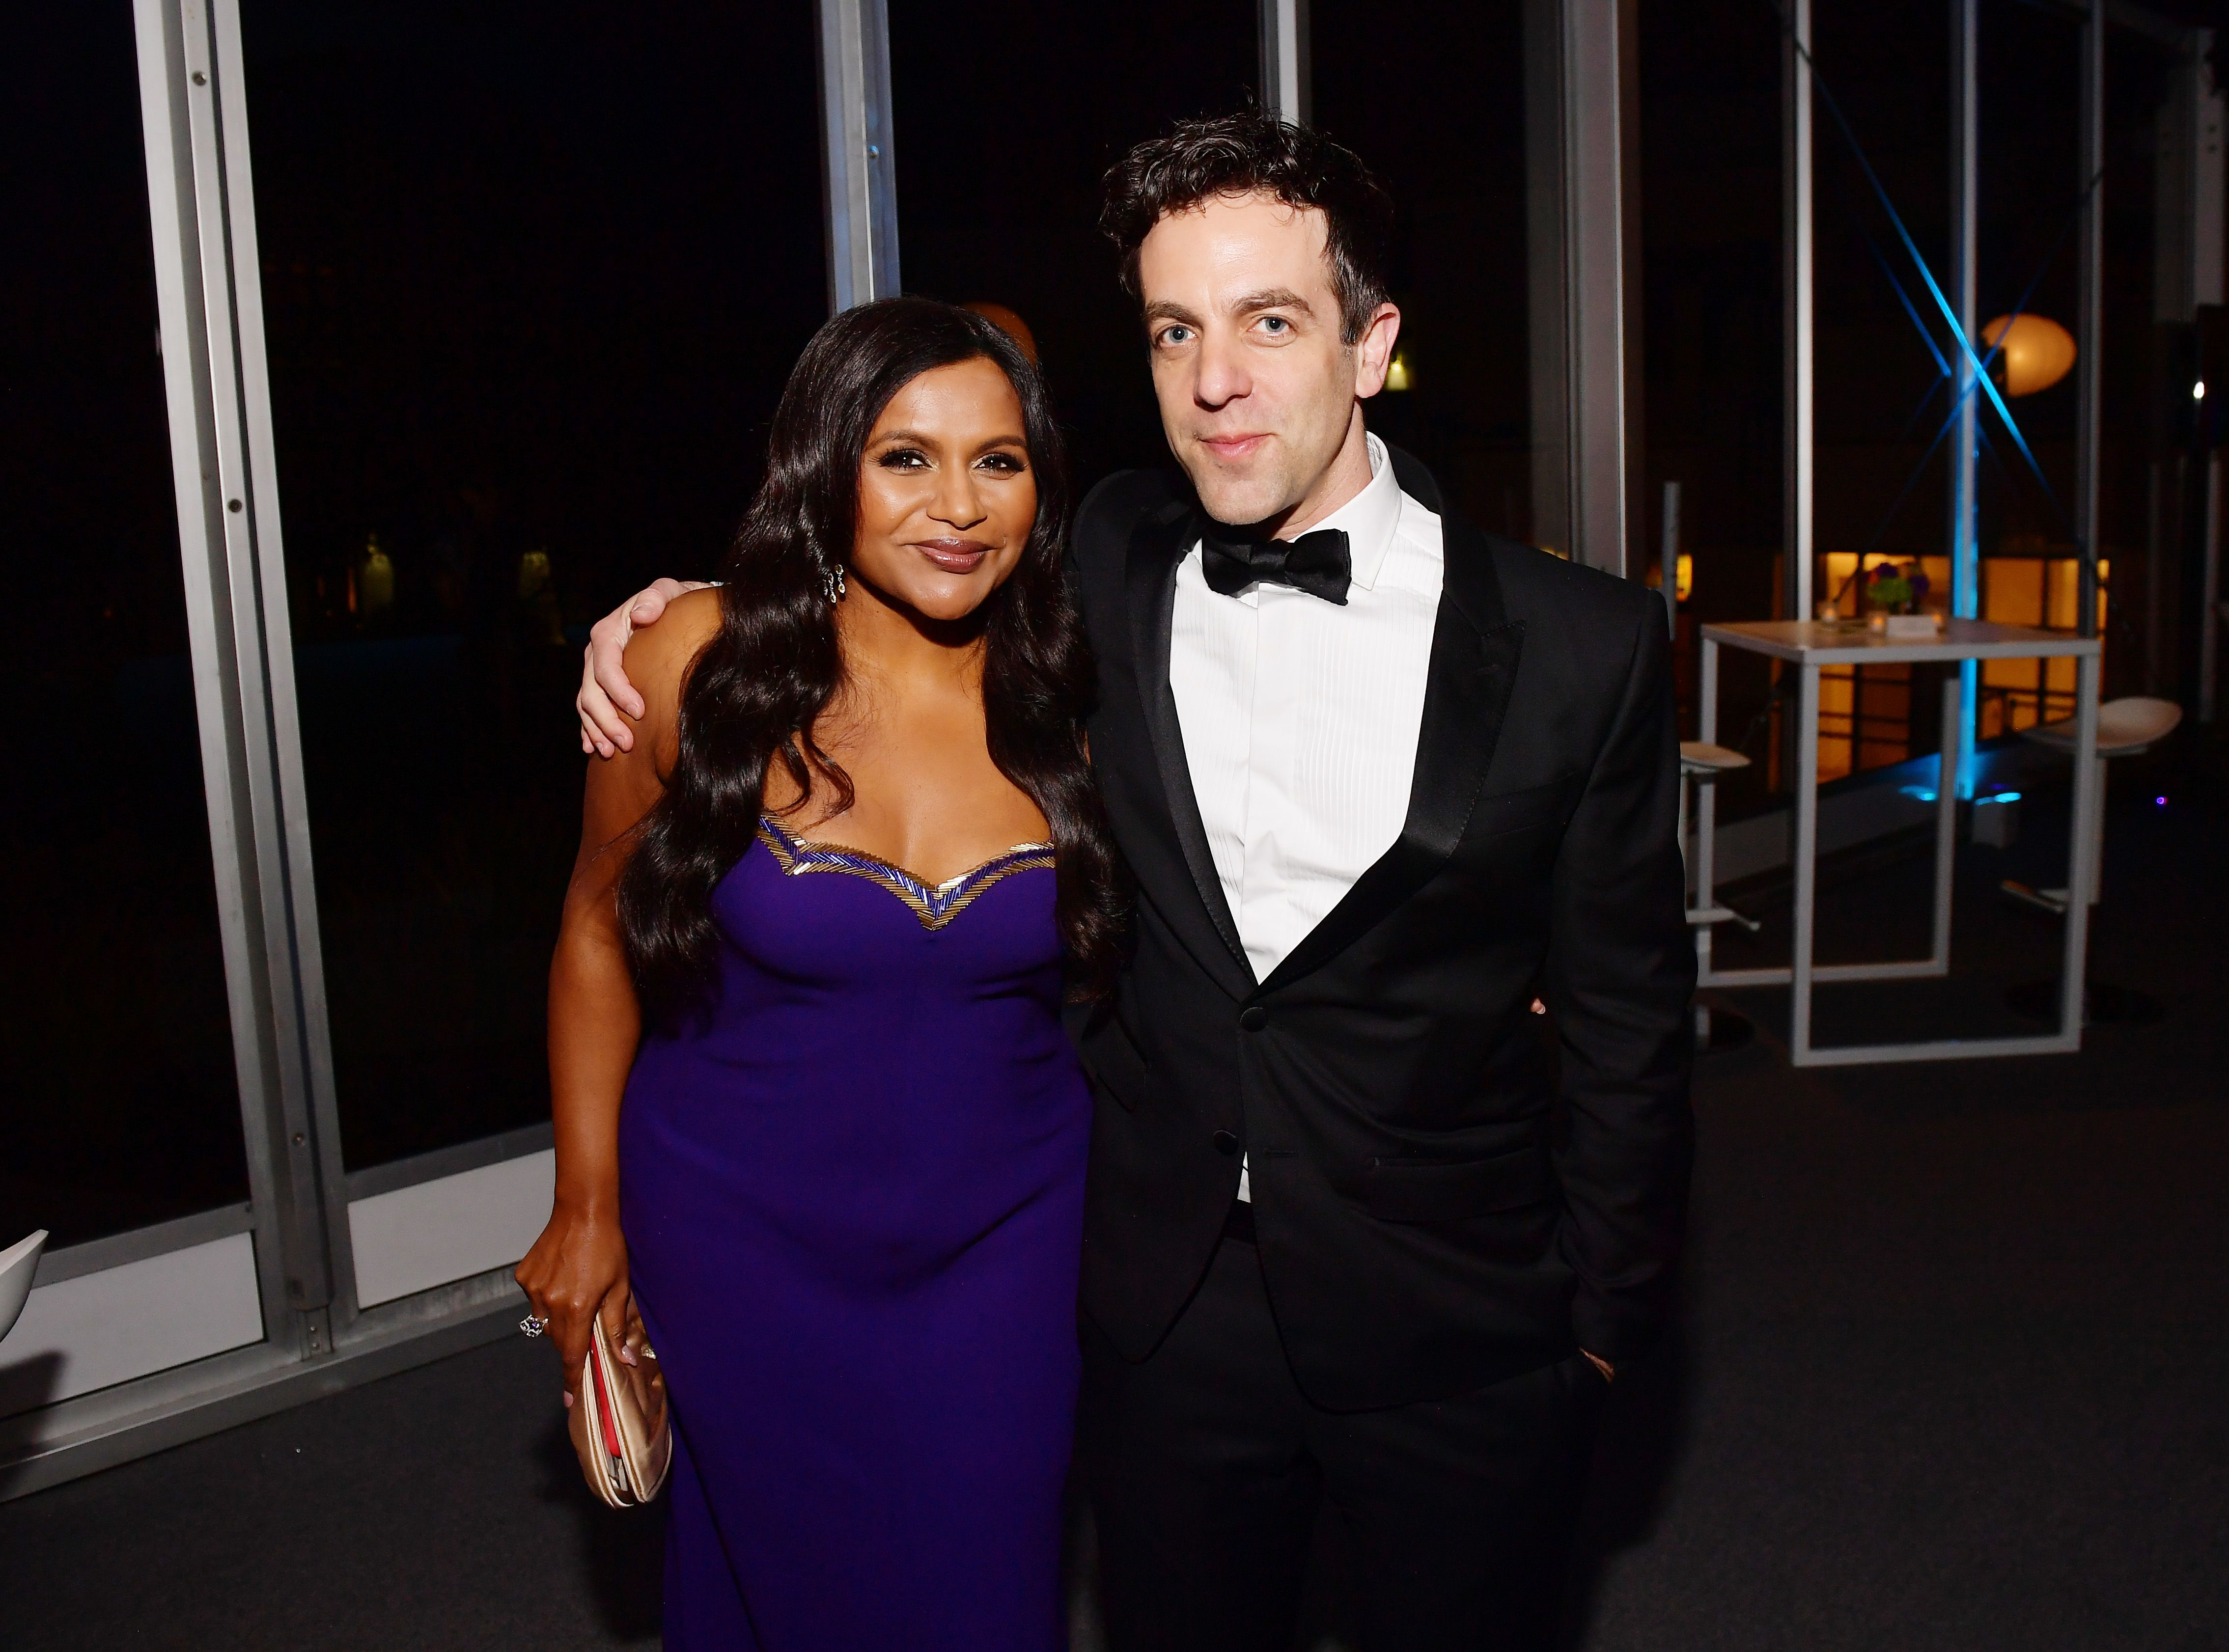 B.j.novak and mindy kaling dating updating the xbox 360